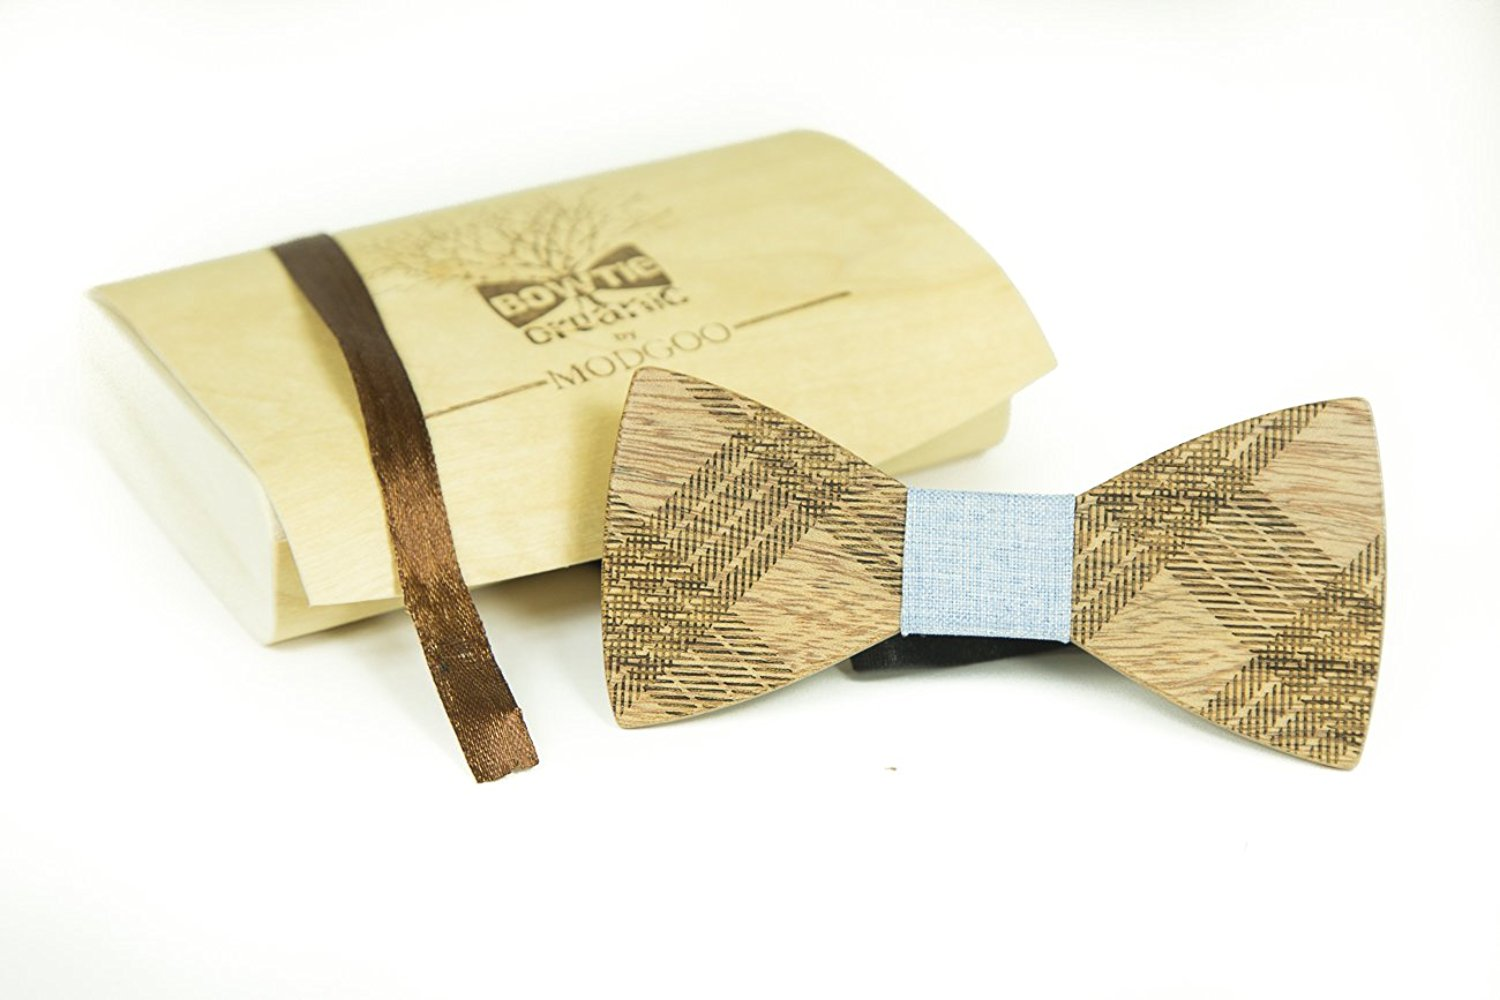 Modgoo Organic Wood Bow Tie Light Blue Rail